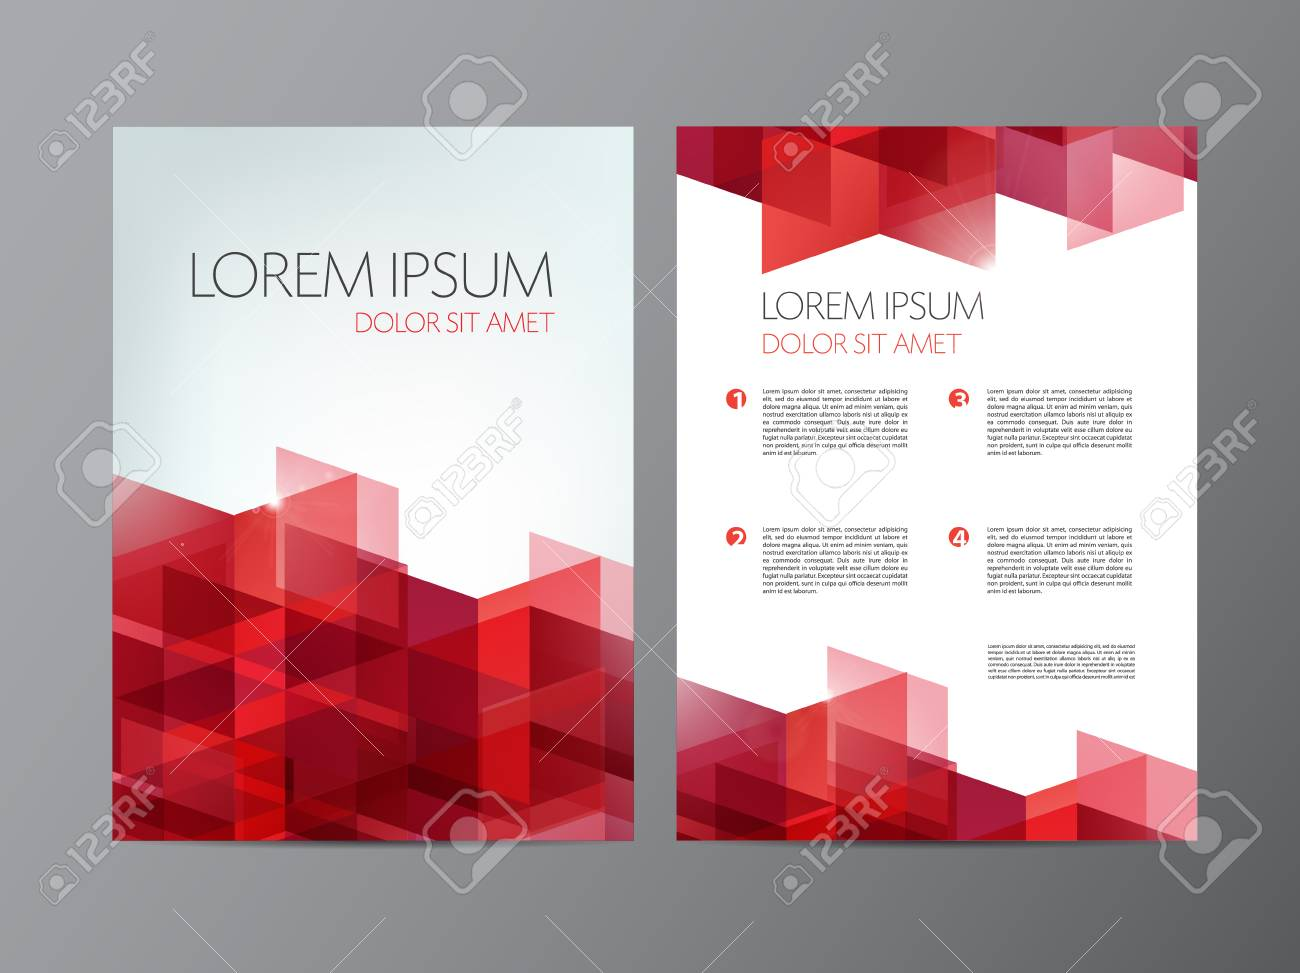 vector flyer, red brochure abstract design 2 sides, background, cover. Modern crystal, geometric - 47346920